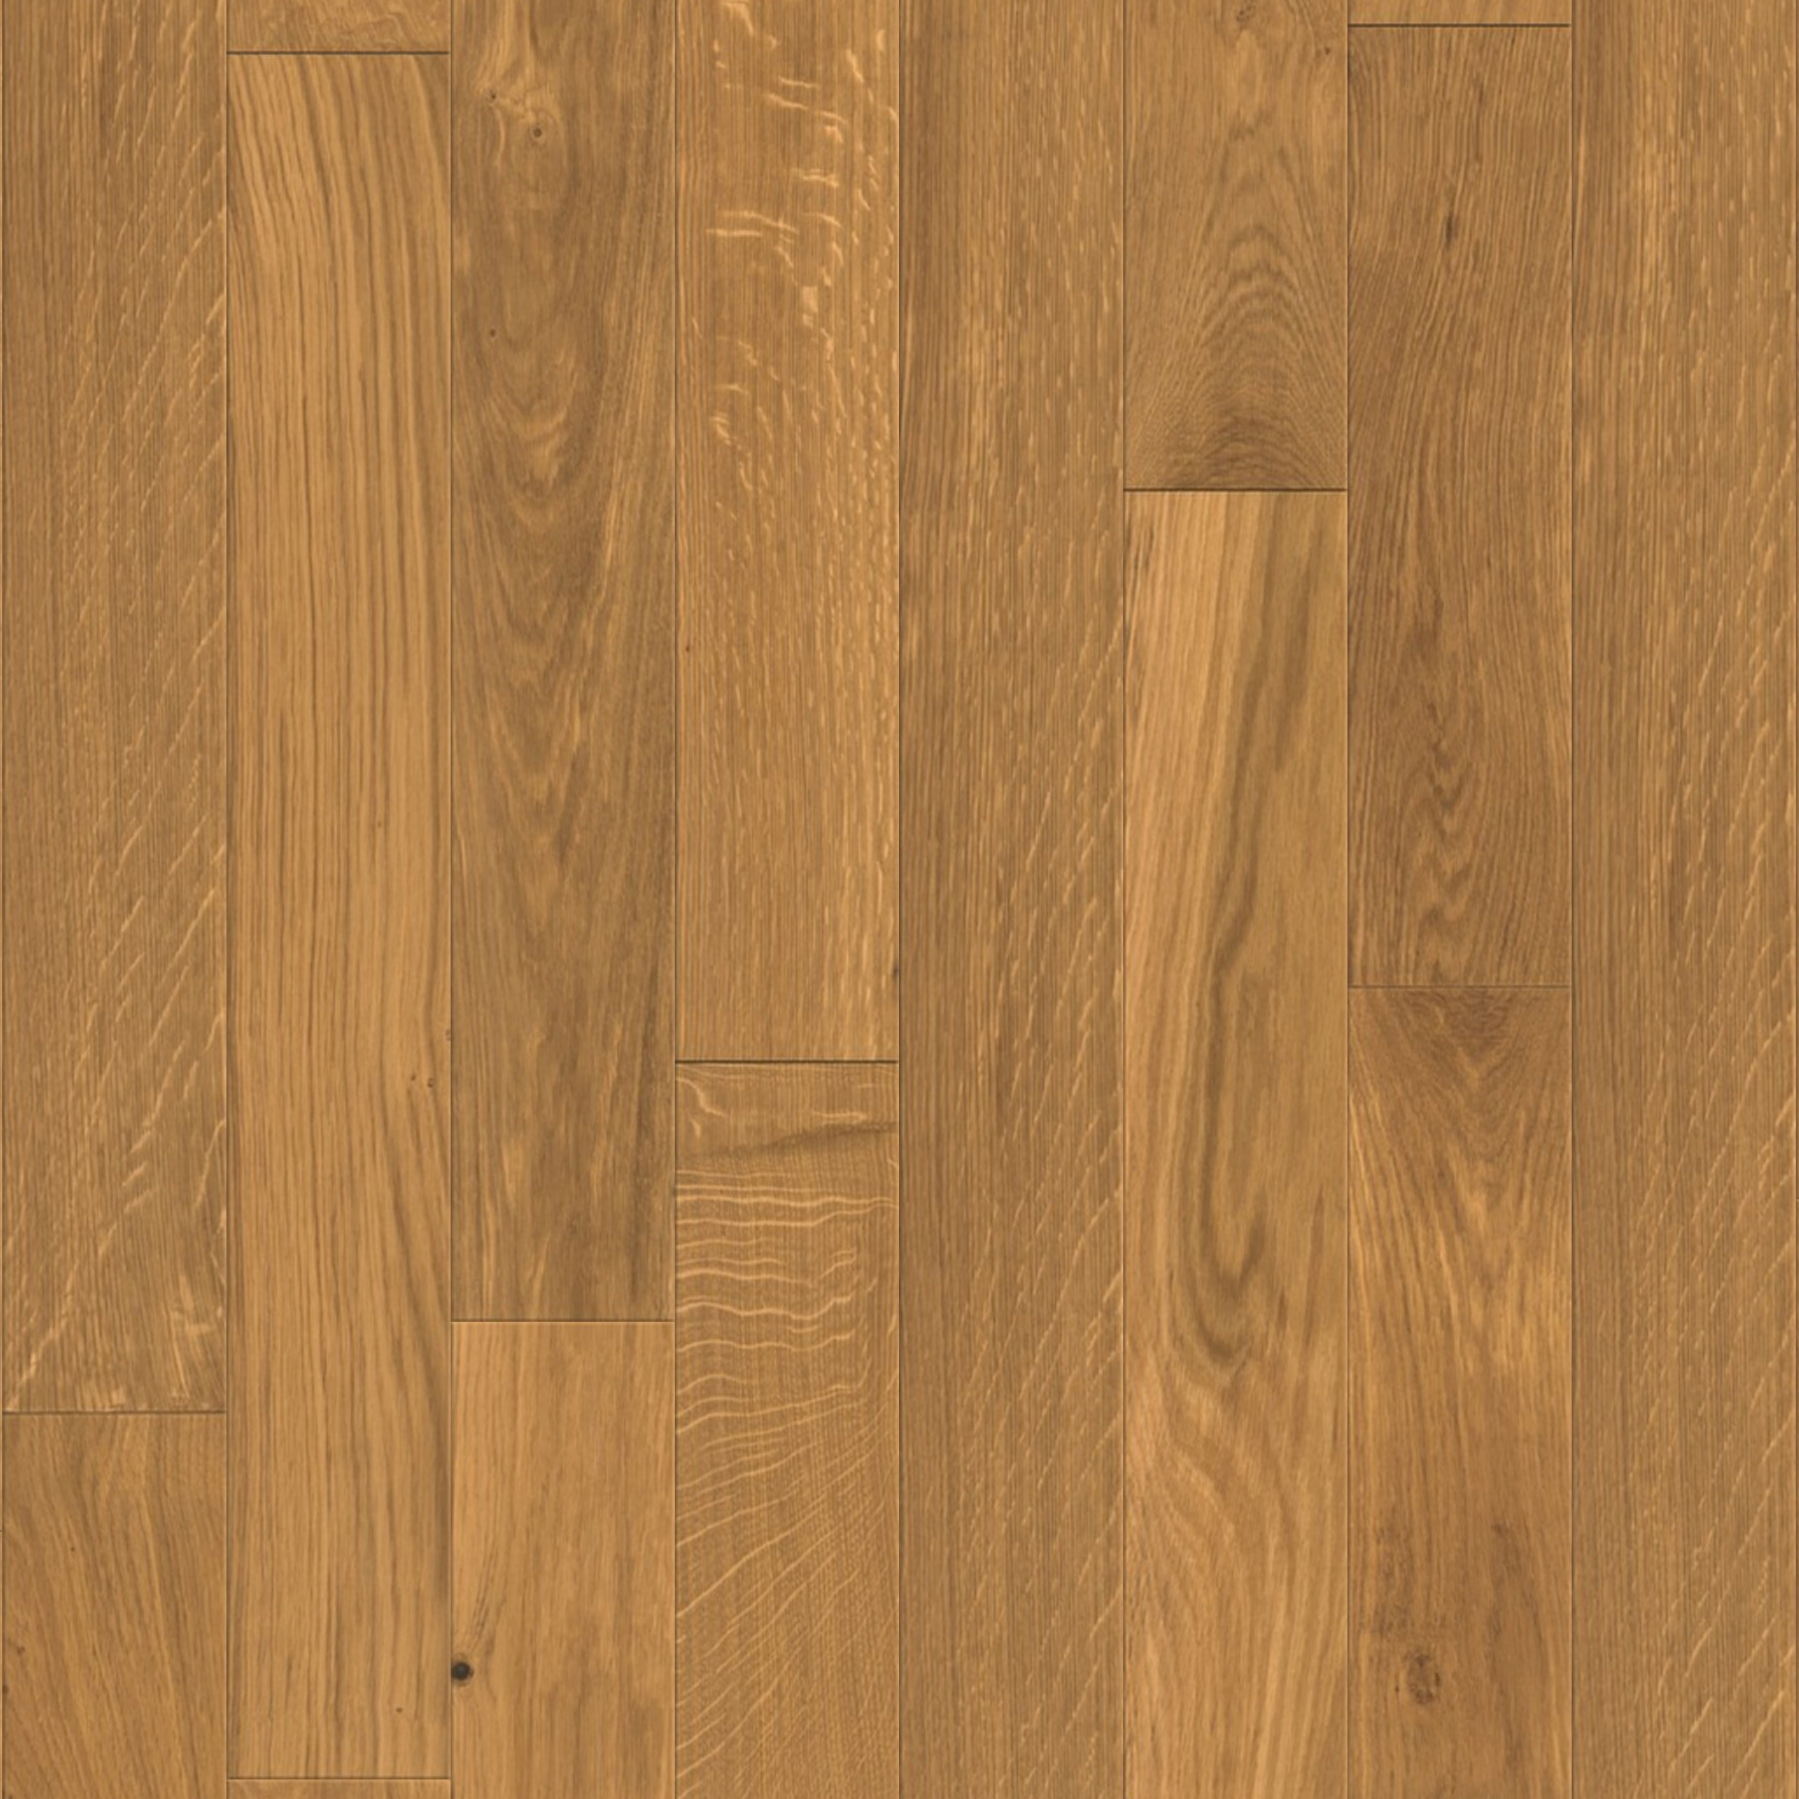 Brushed & Oiled<br>2829